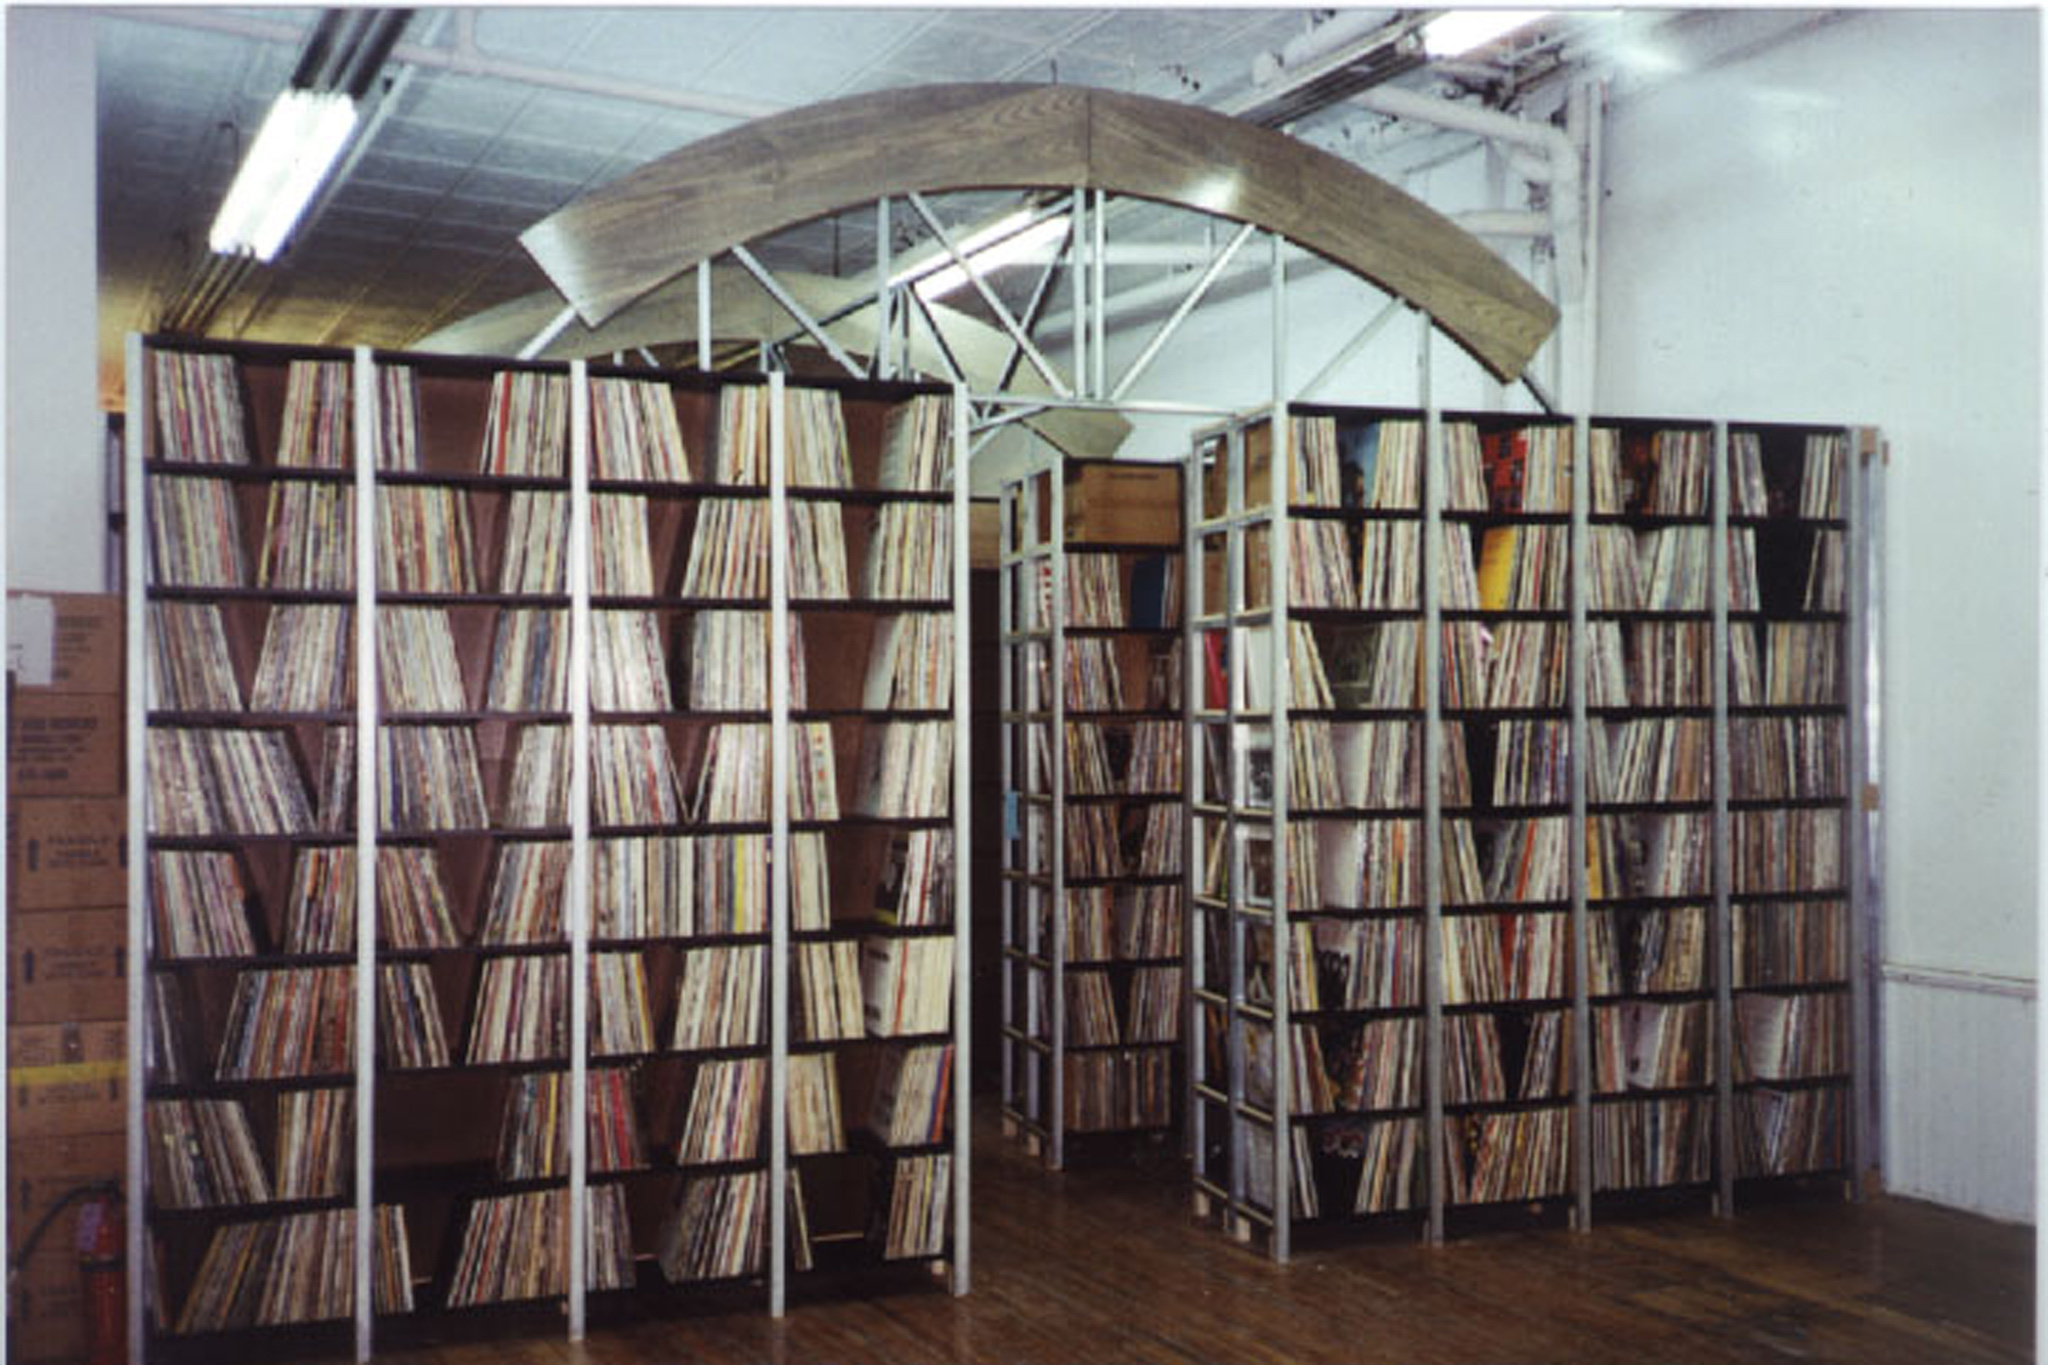 ARChive of Contemporary Music